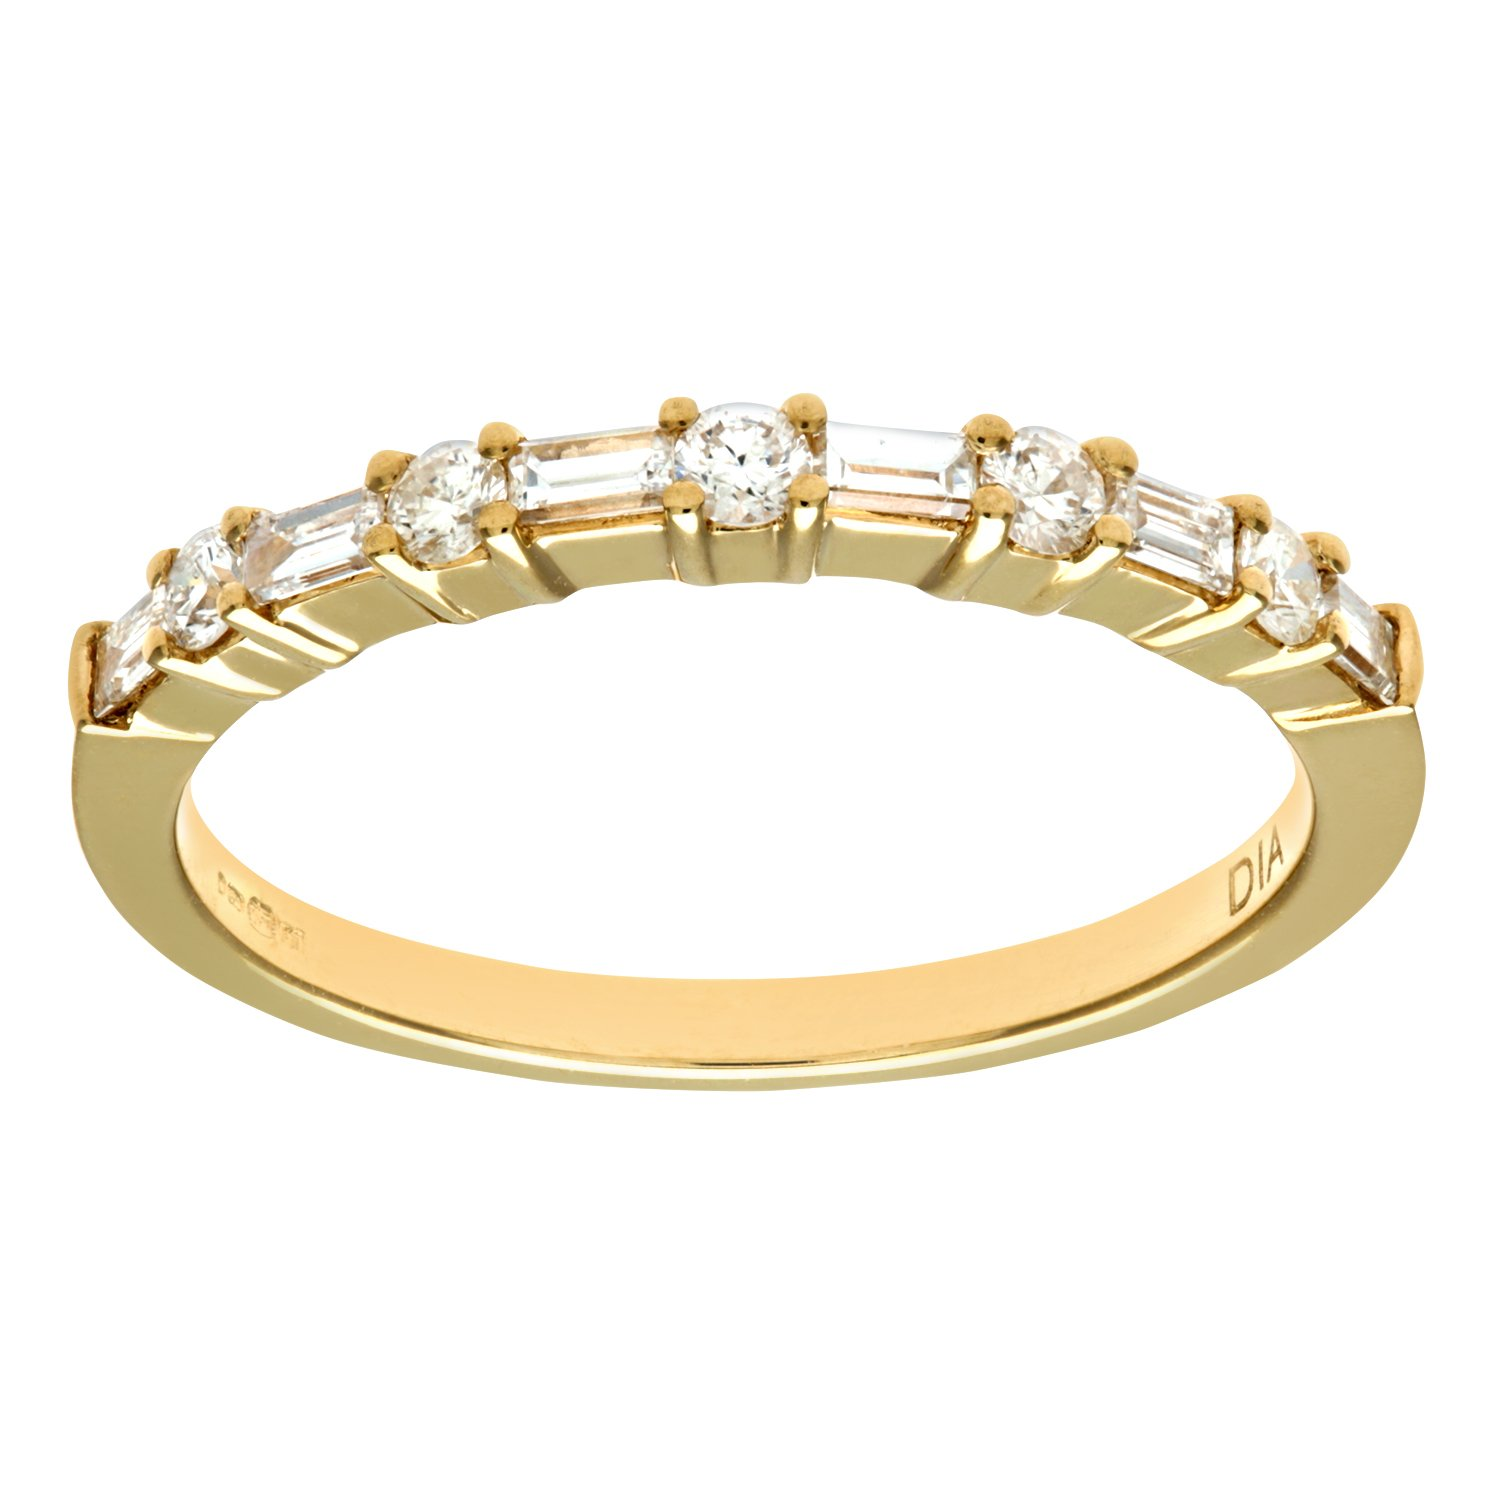 main com diamond lewis pdp at johnlewis rings buyewa gold eternity online john jewellery ring rsp ewa